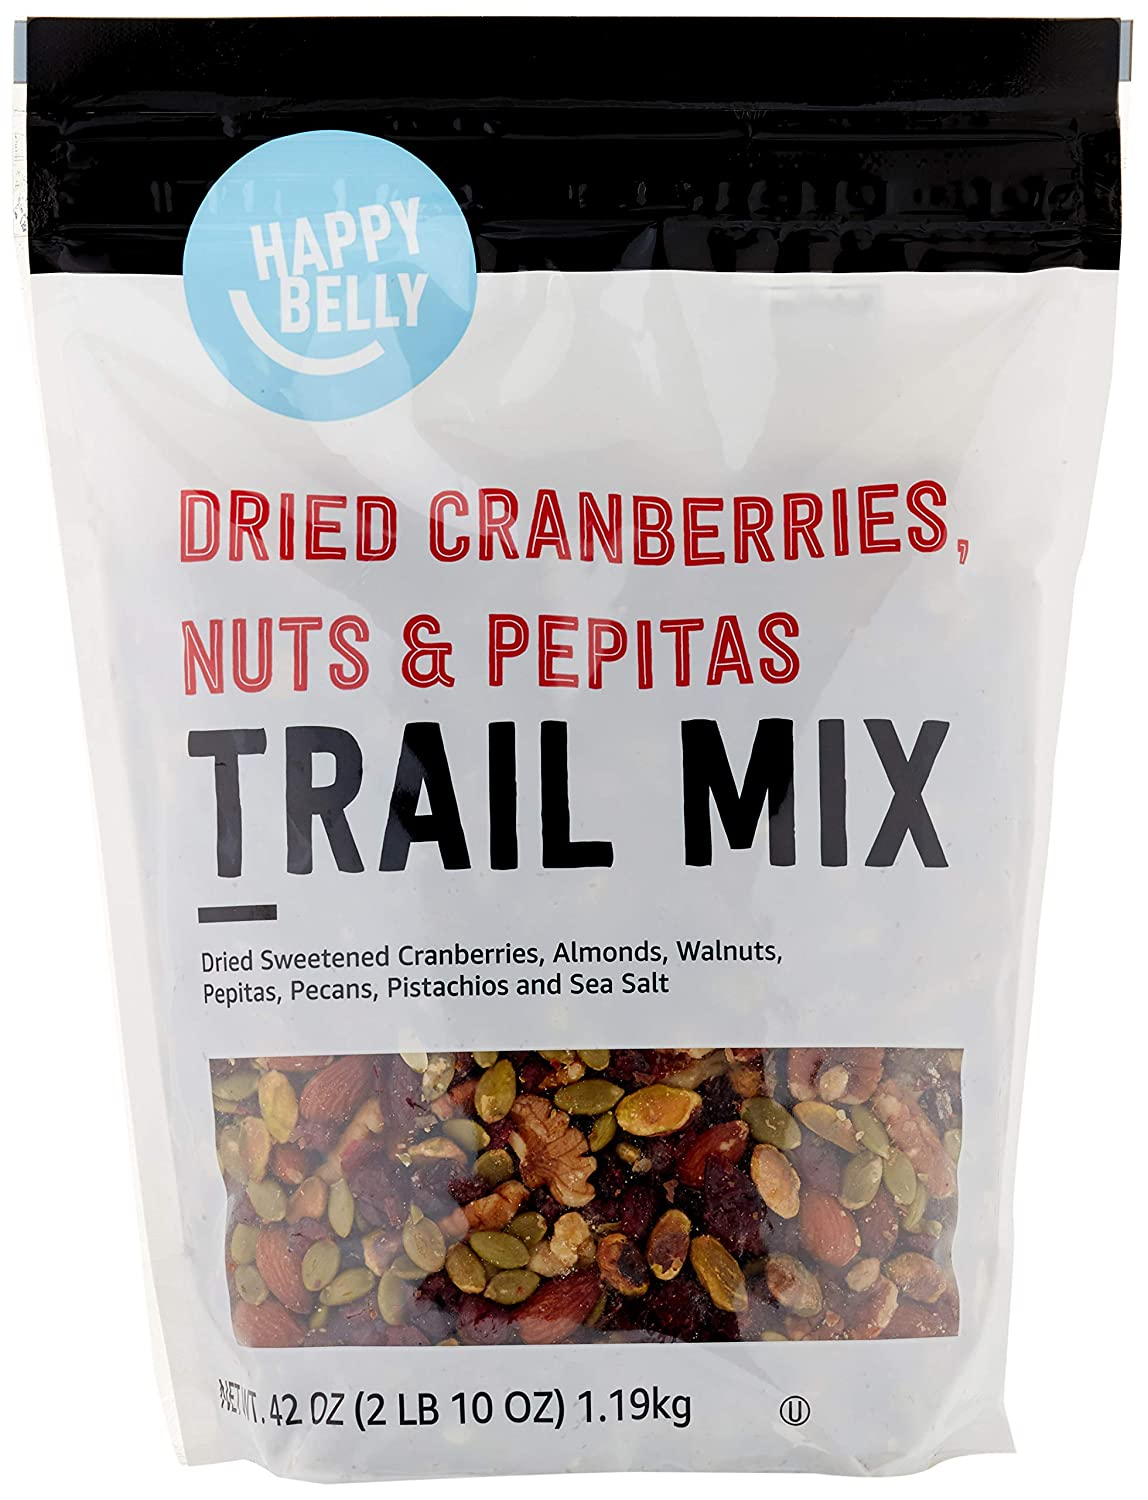 Happy Belly Trail Mix. Do visit these 23 Smart Quarantine Pantry Supplies for Social Isolation I Ordered. #quarantinesupplies #pantryitems #nonperishables